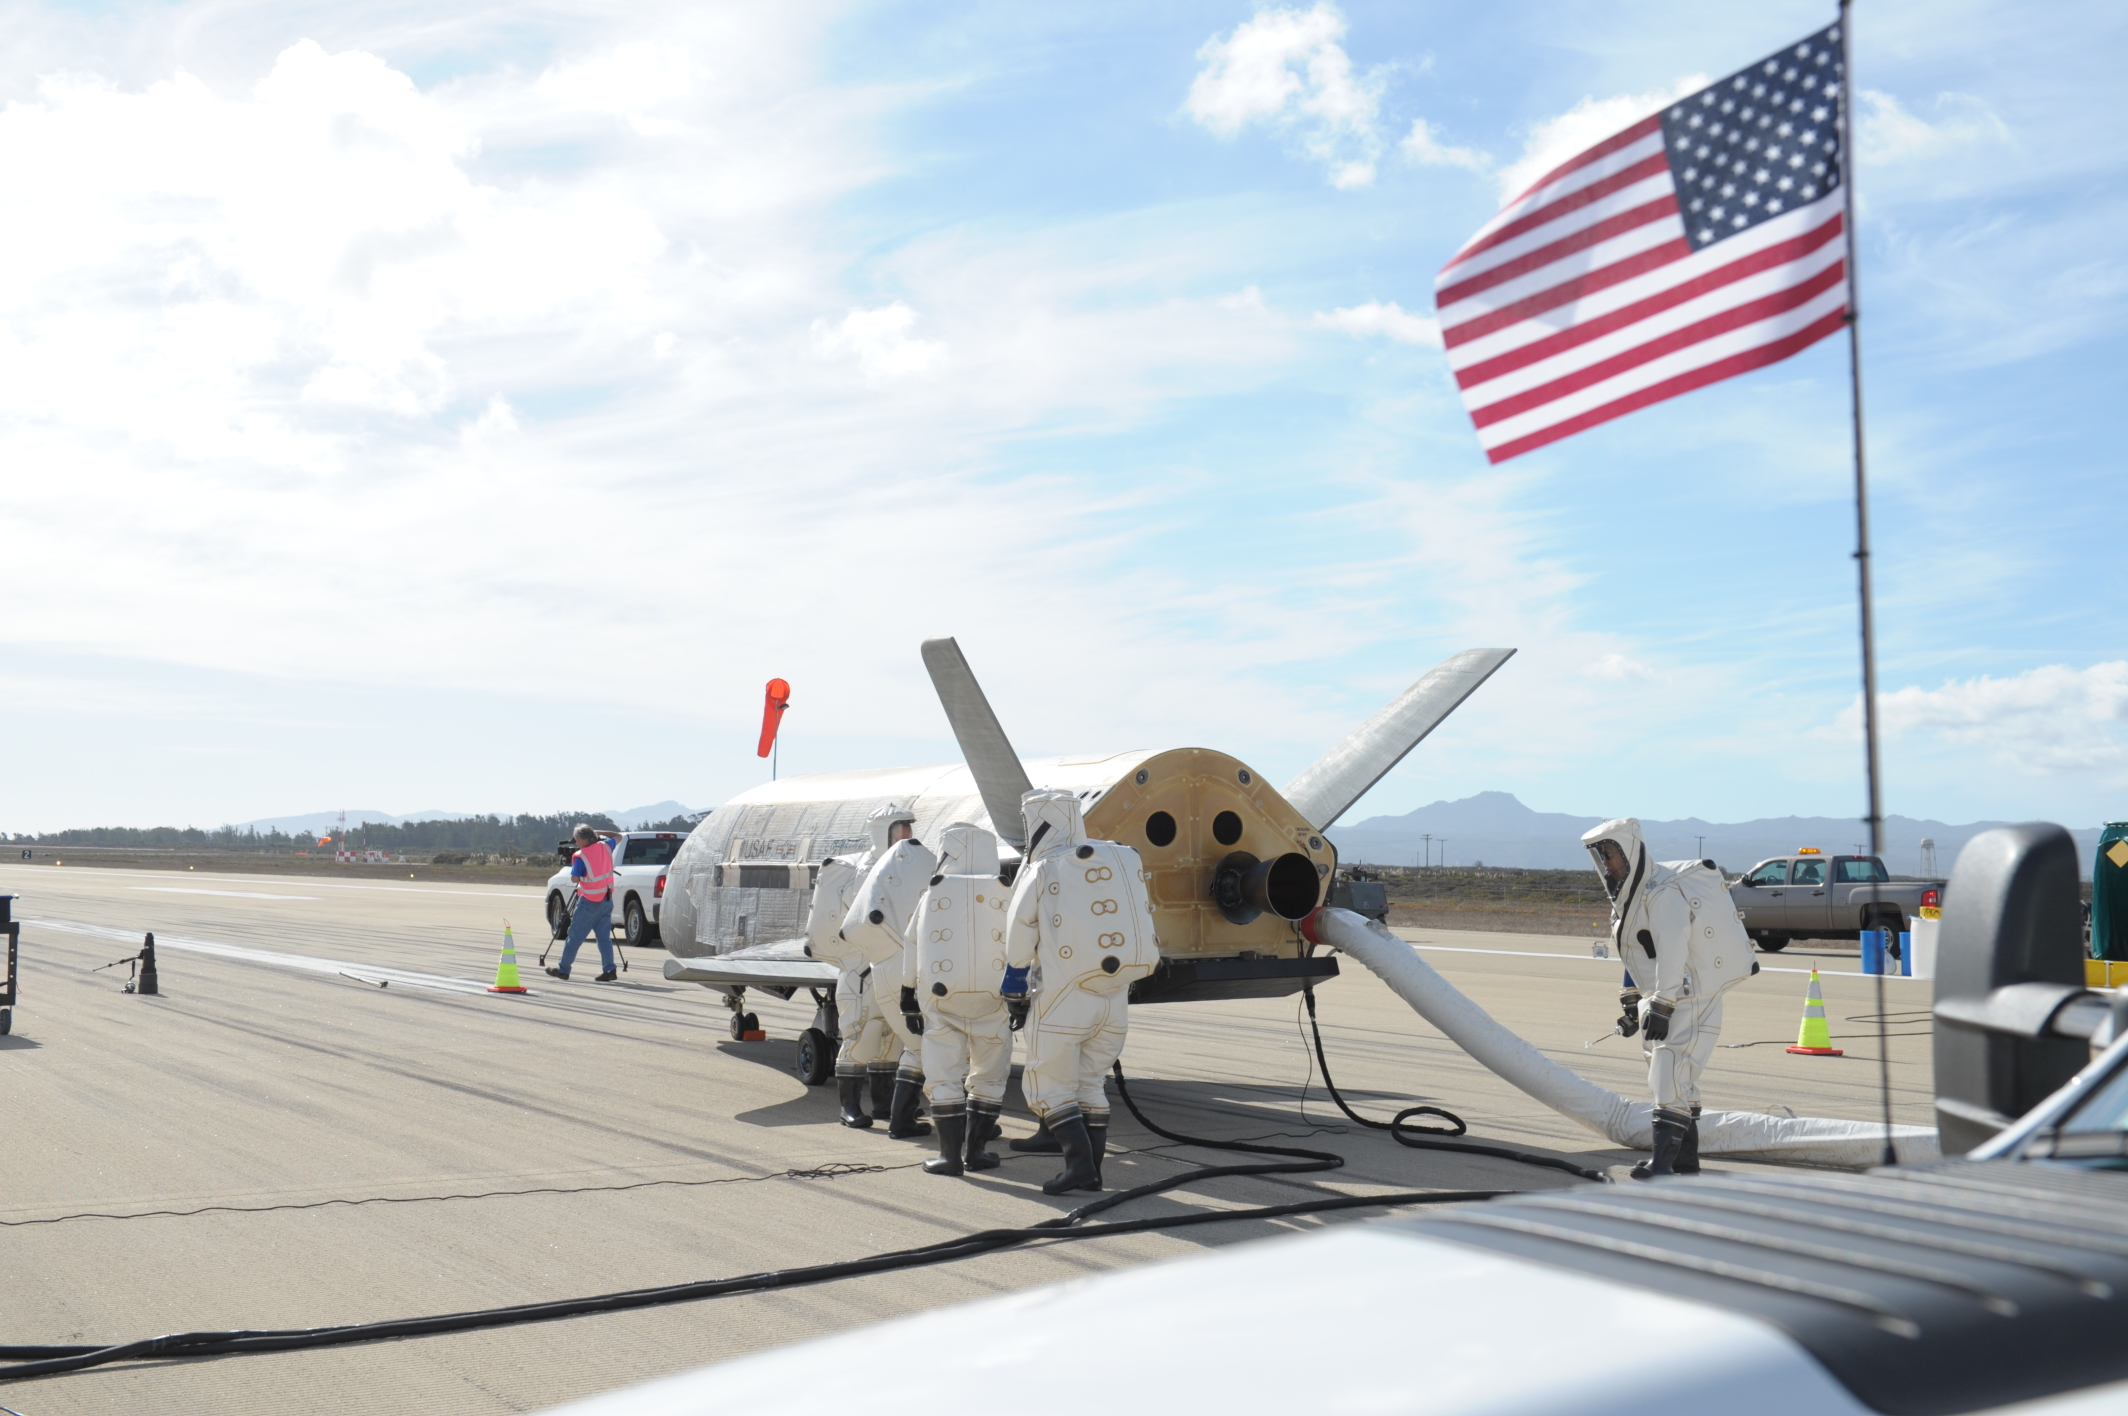 X-37B Space Plane Landing and Flag